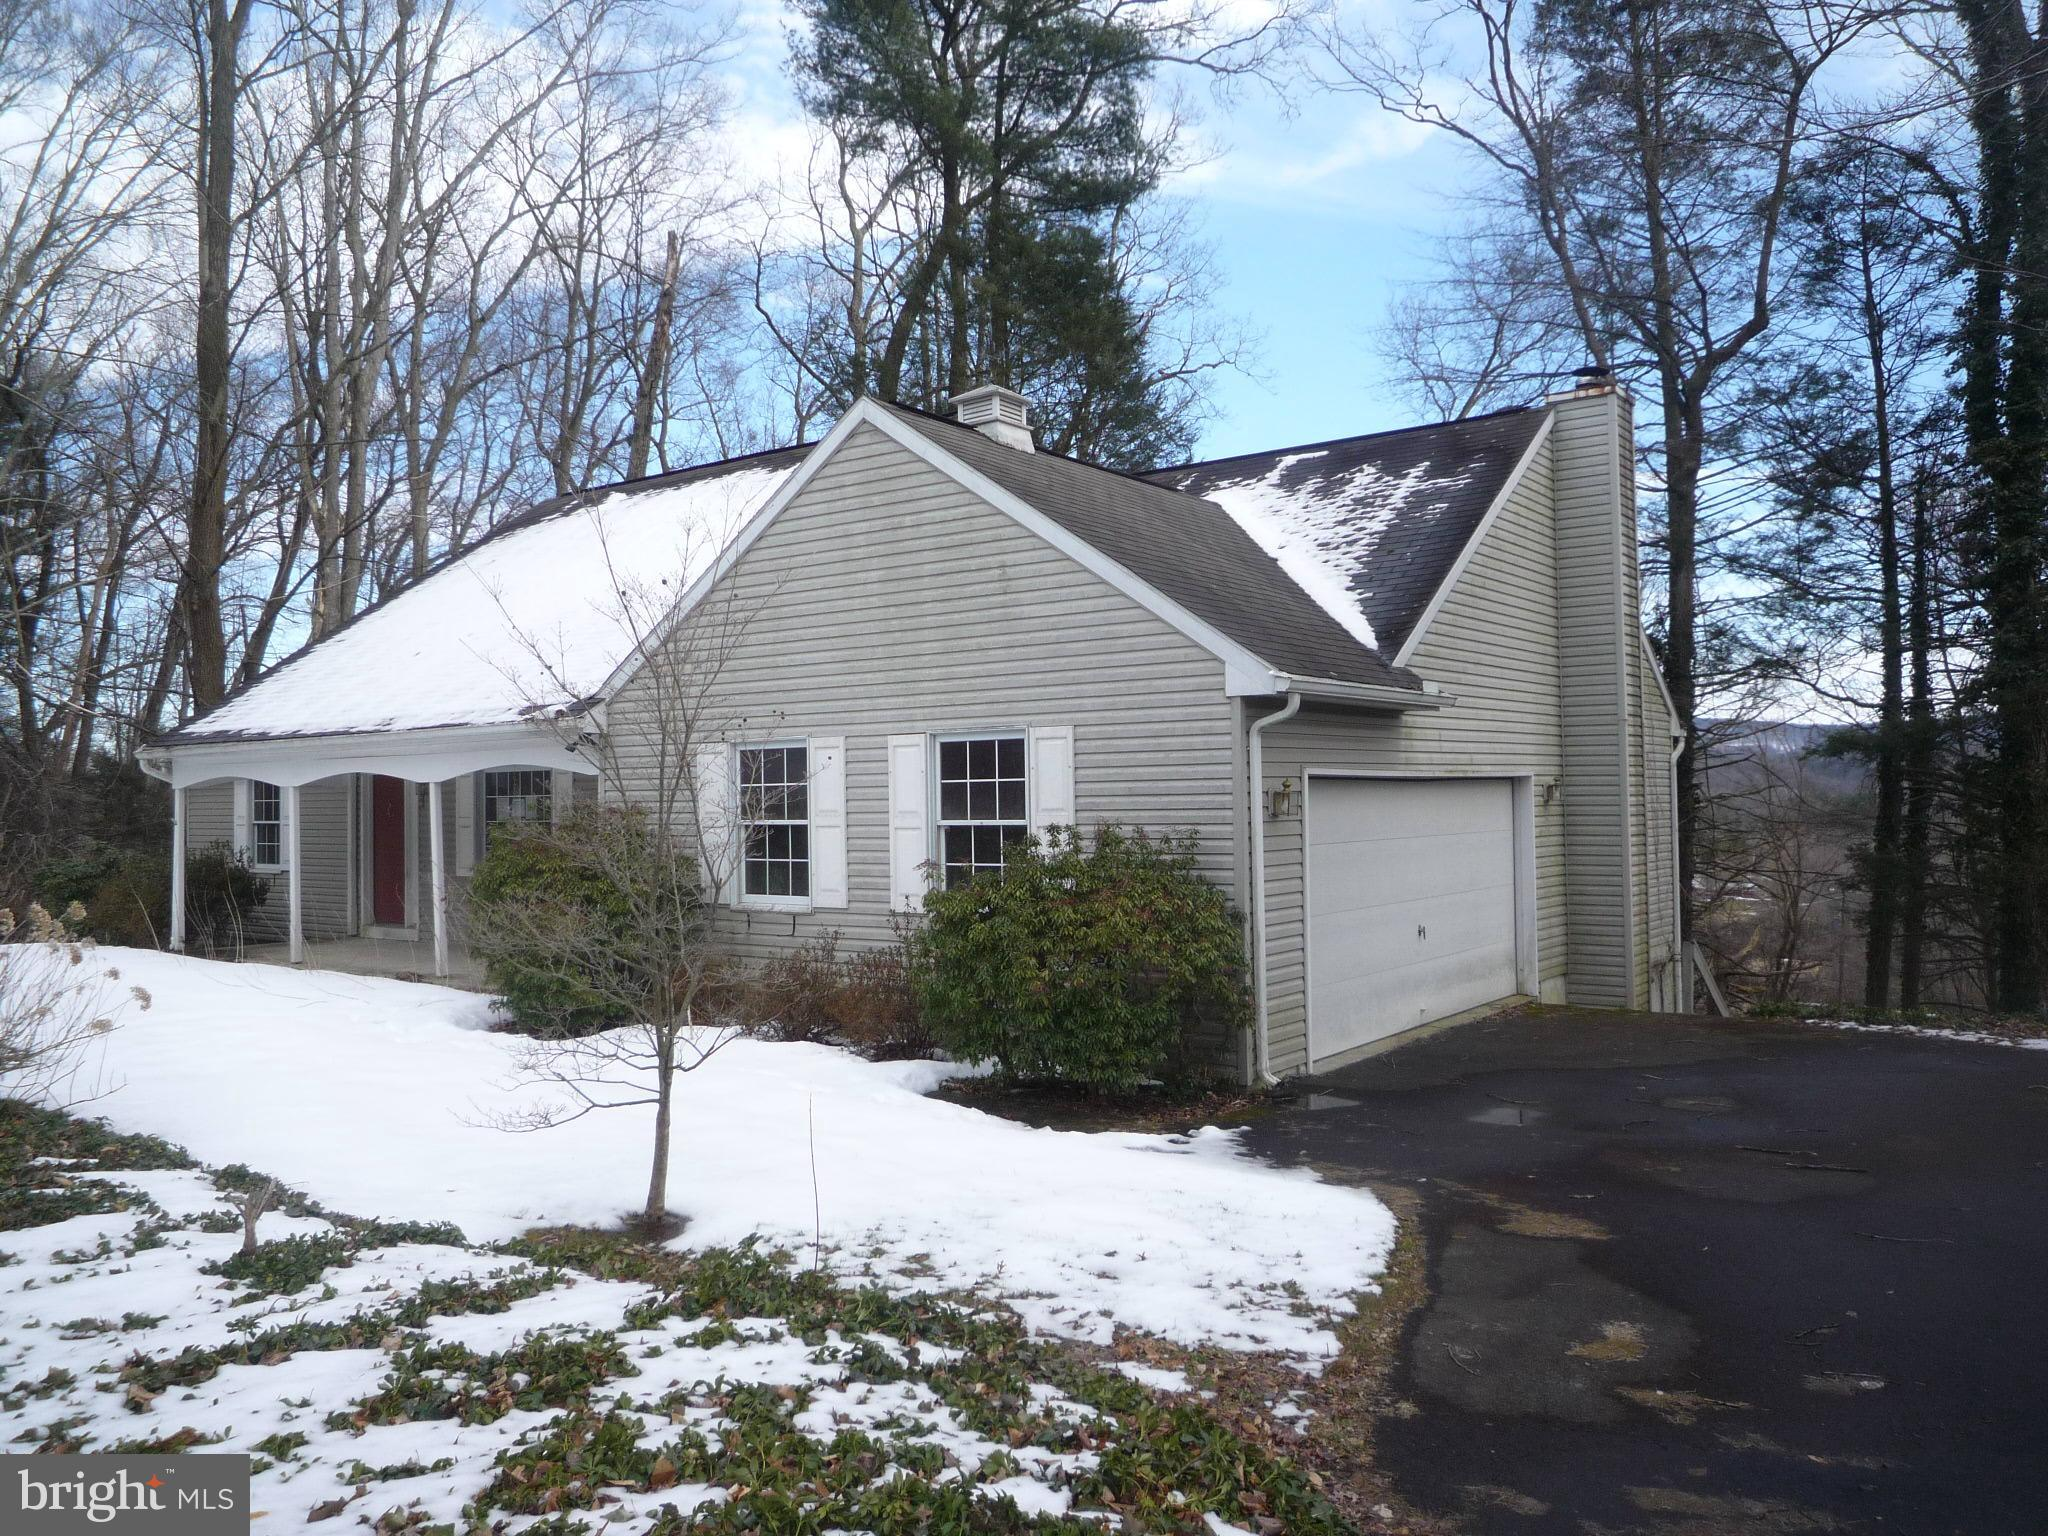 104 OAK LANE, PINE GROVE, PA 17963